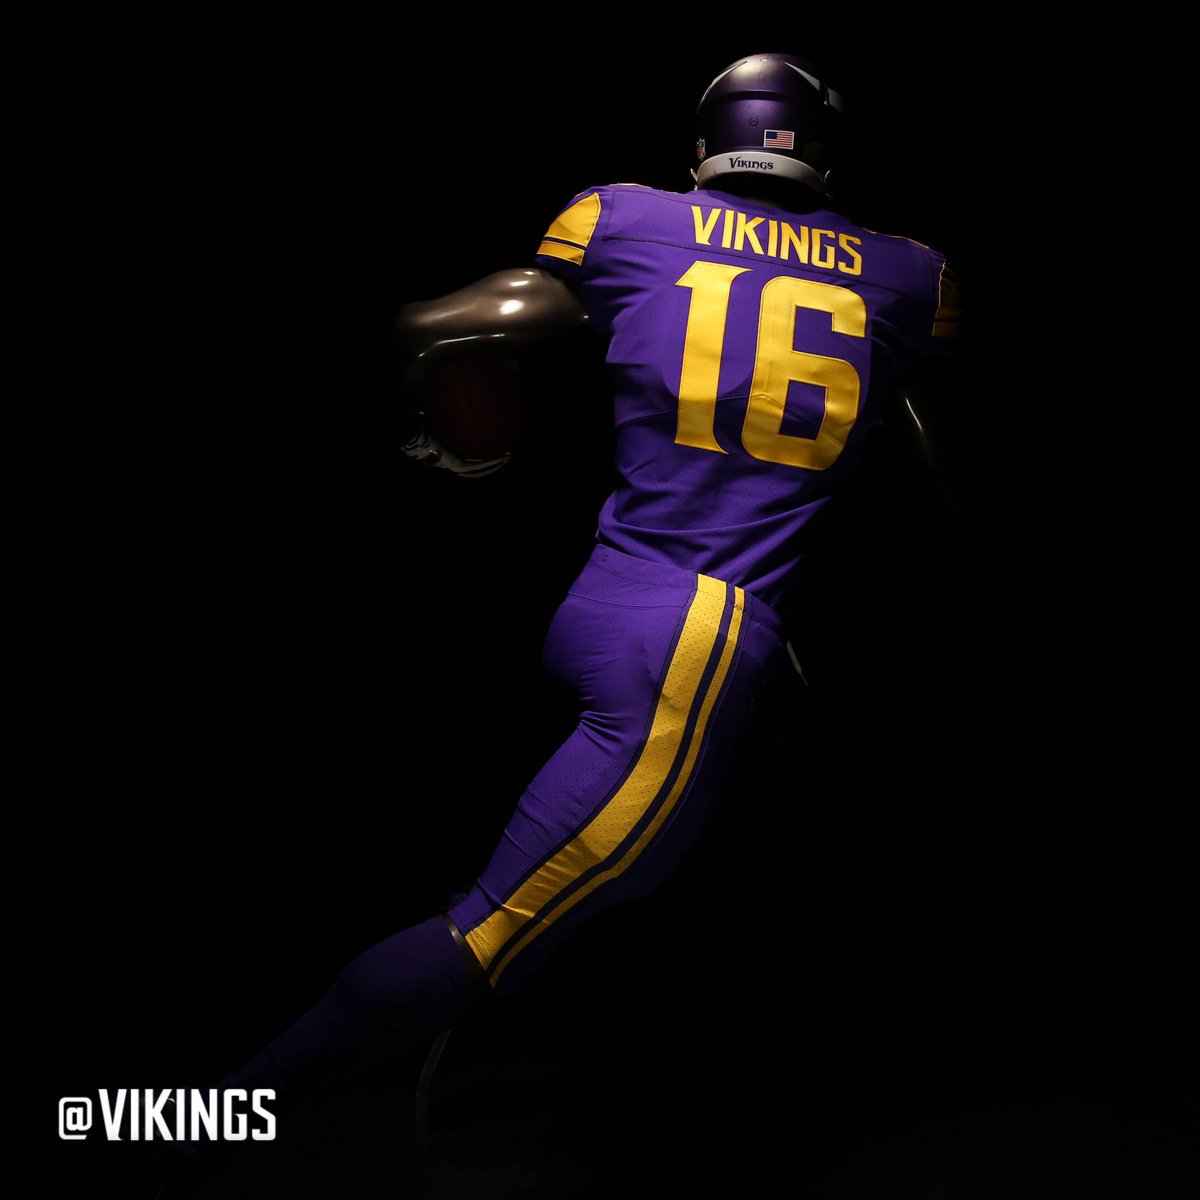 outlet store 56aff ab128 mn vikings color rush jerseys